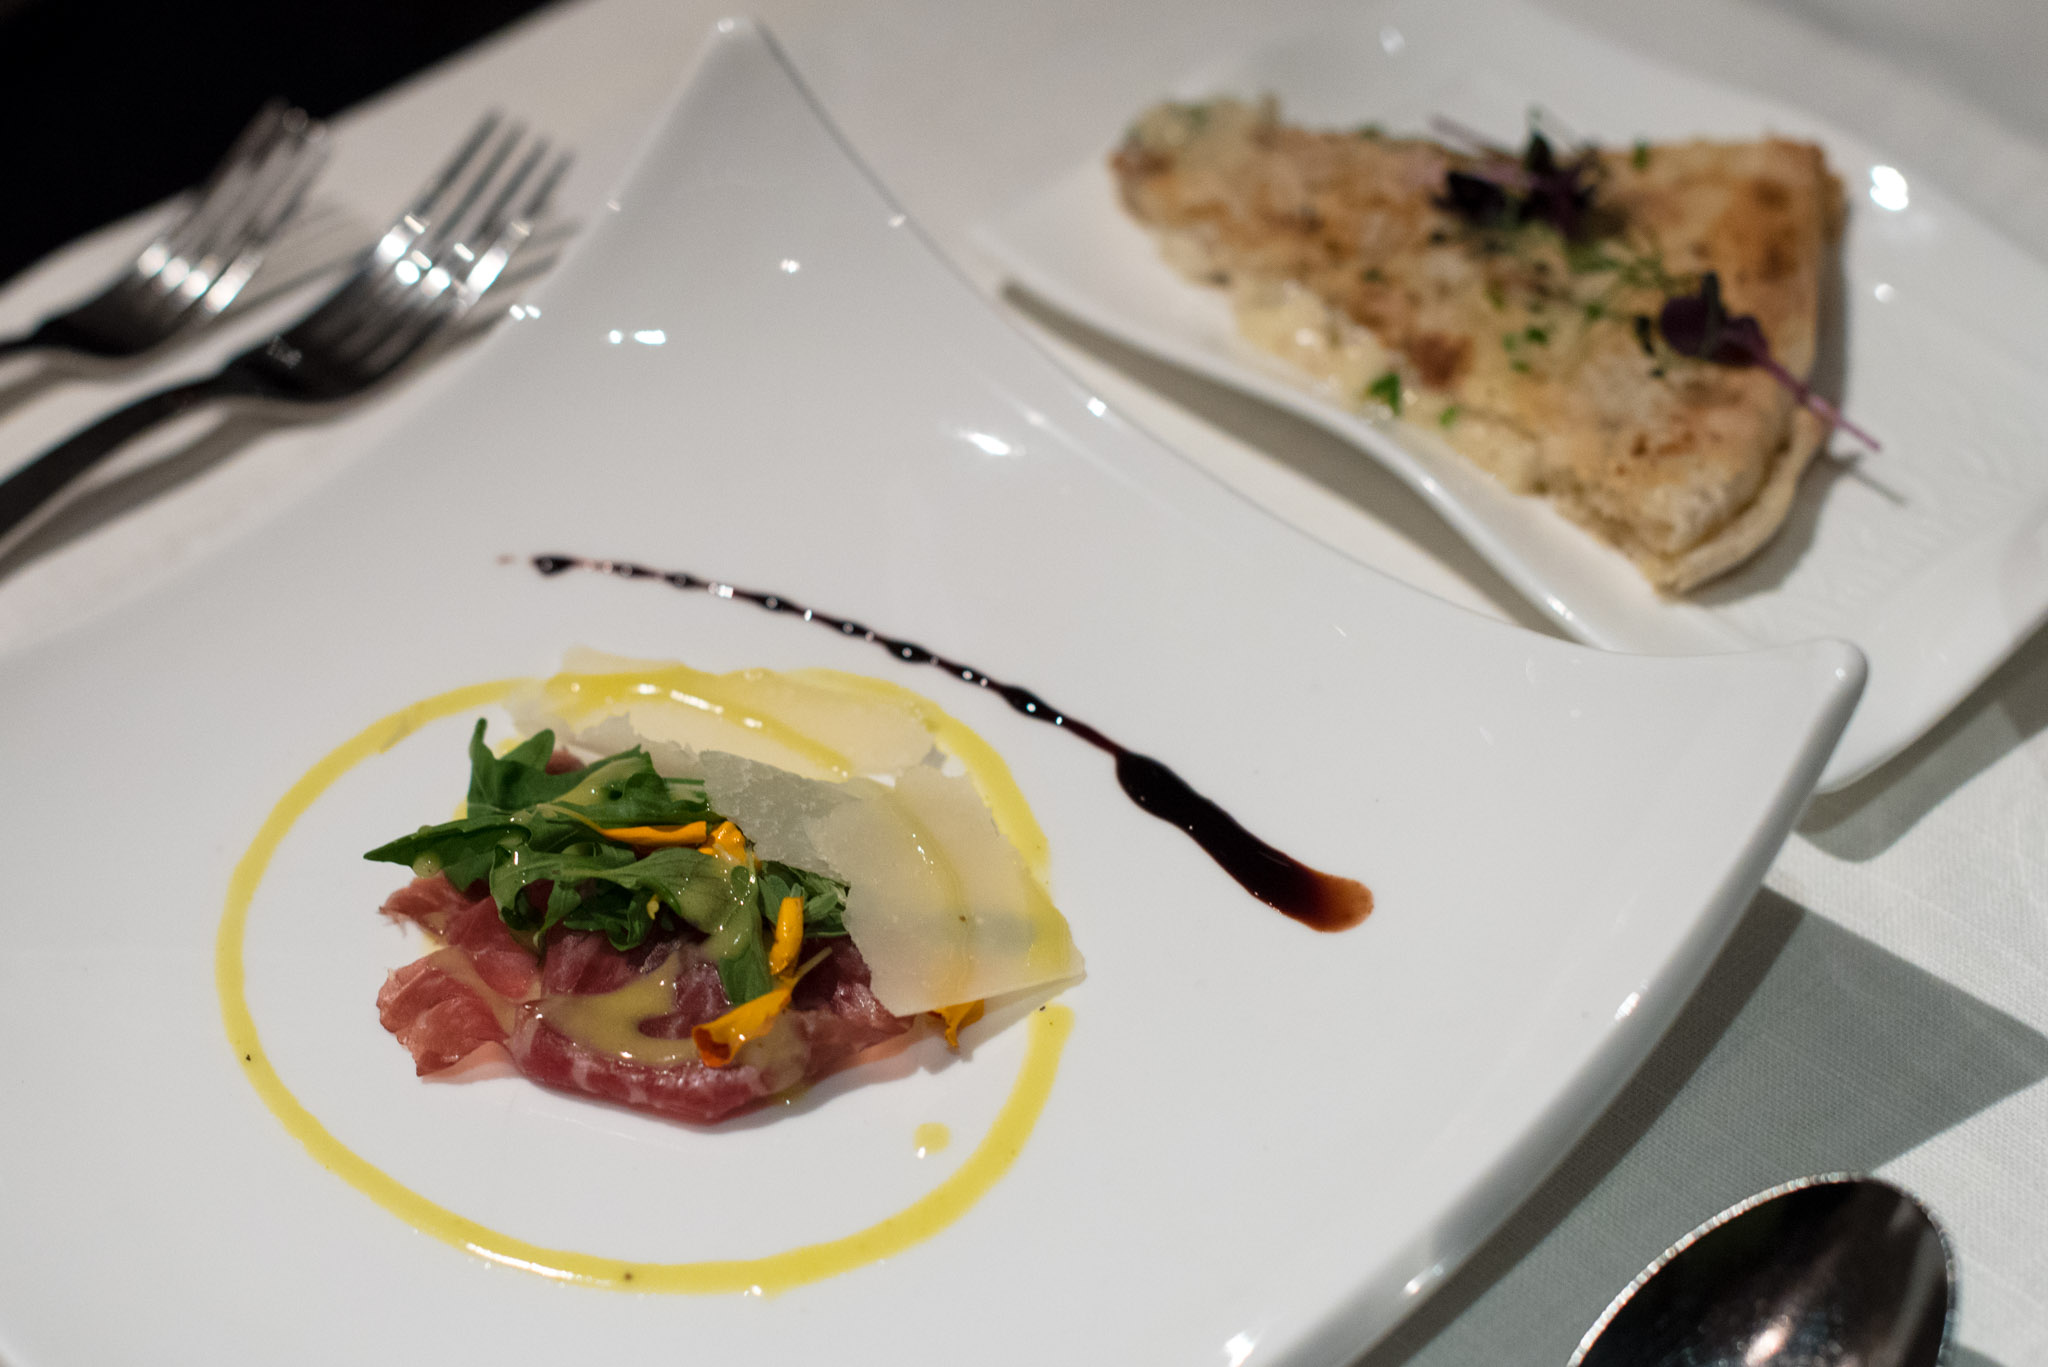 Front: 60-day Cured Wagyu Beef with 40-month Aged Parmesan Cheese and Summer Salad with Amalfi Lemon Dressing (S$31++) | Back: Focaccia Mascarpone  Basilico - Regent Singapore